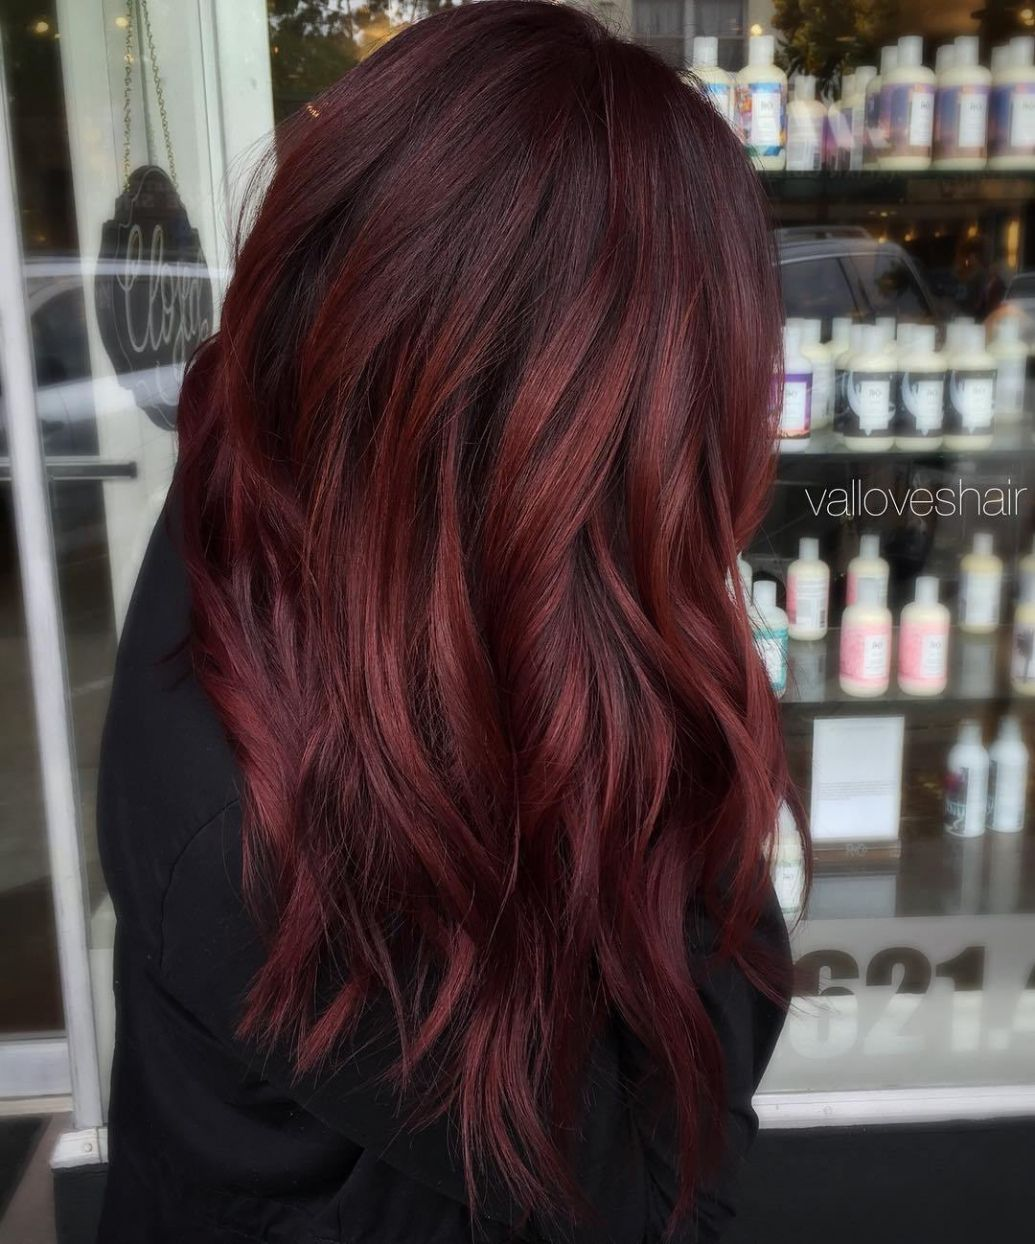 Chocolate Brown Hair Color With Red Highlights Best Natural Hair